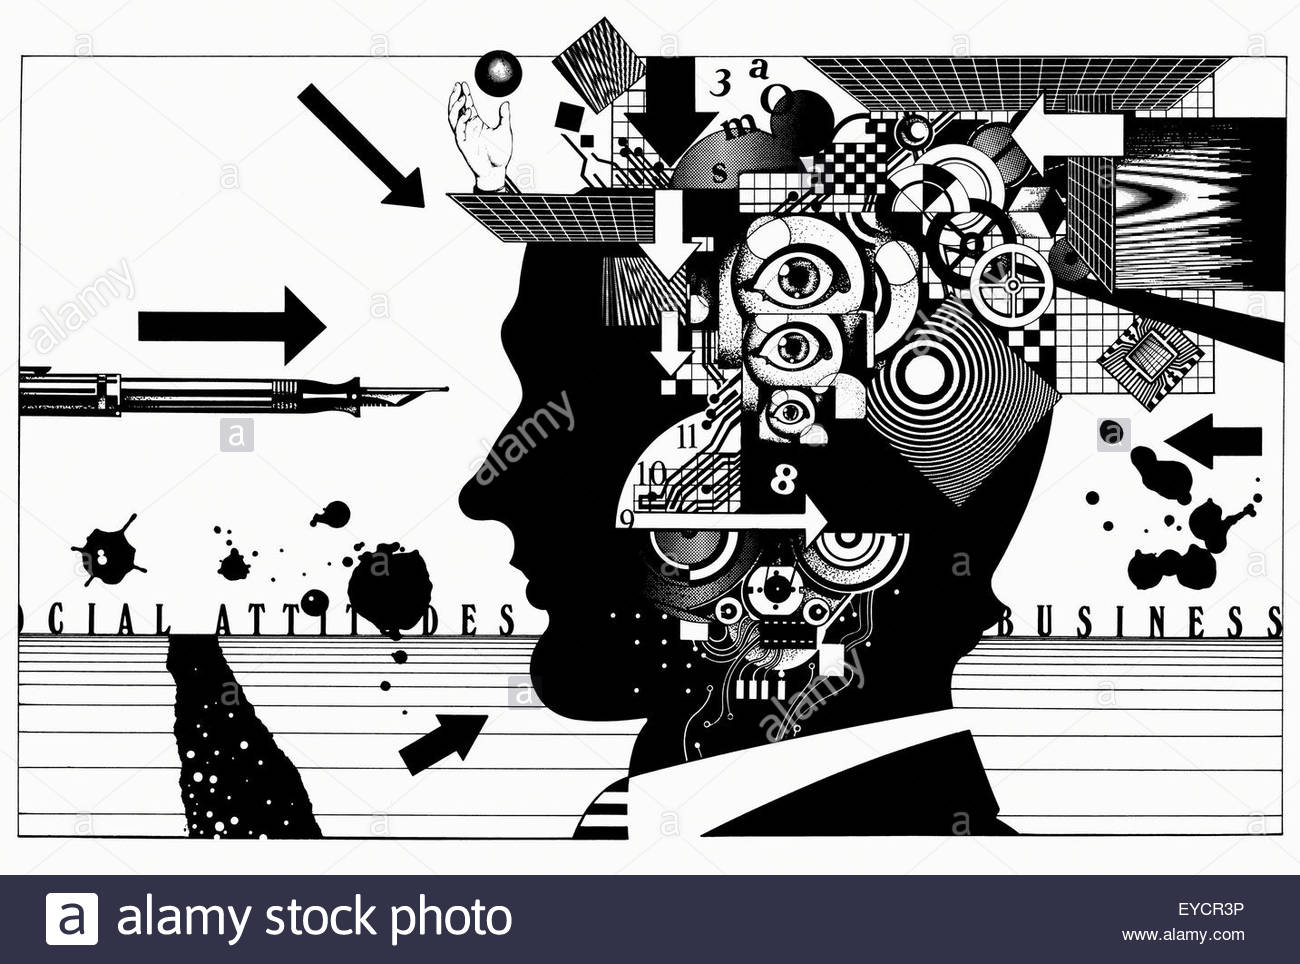 Complex pattern of cogs, puzzles, circuit boards and eyeballs inside of businessman's head - Stock Image